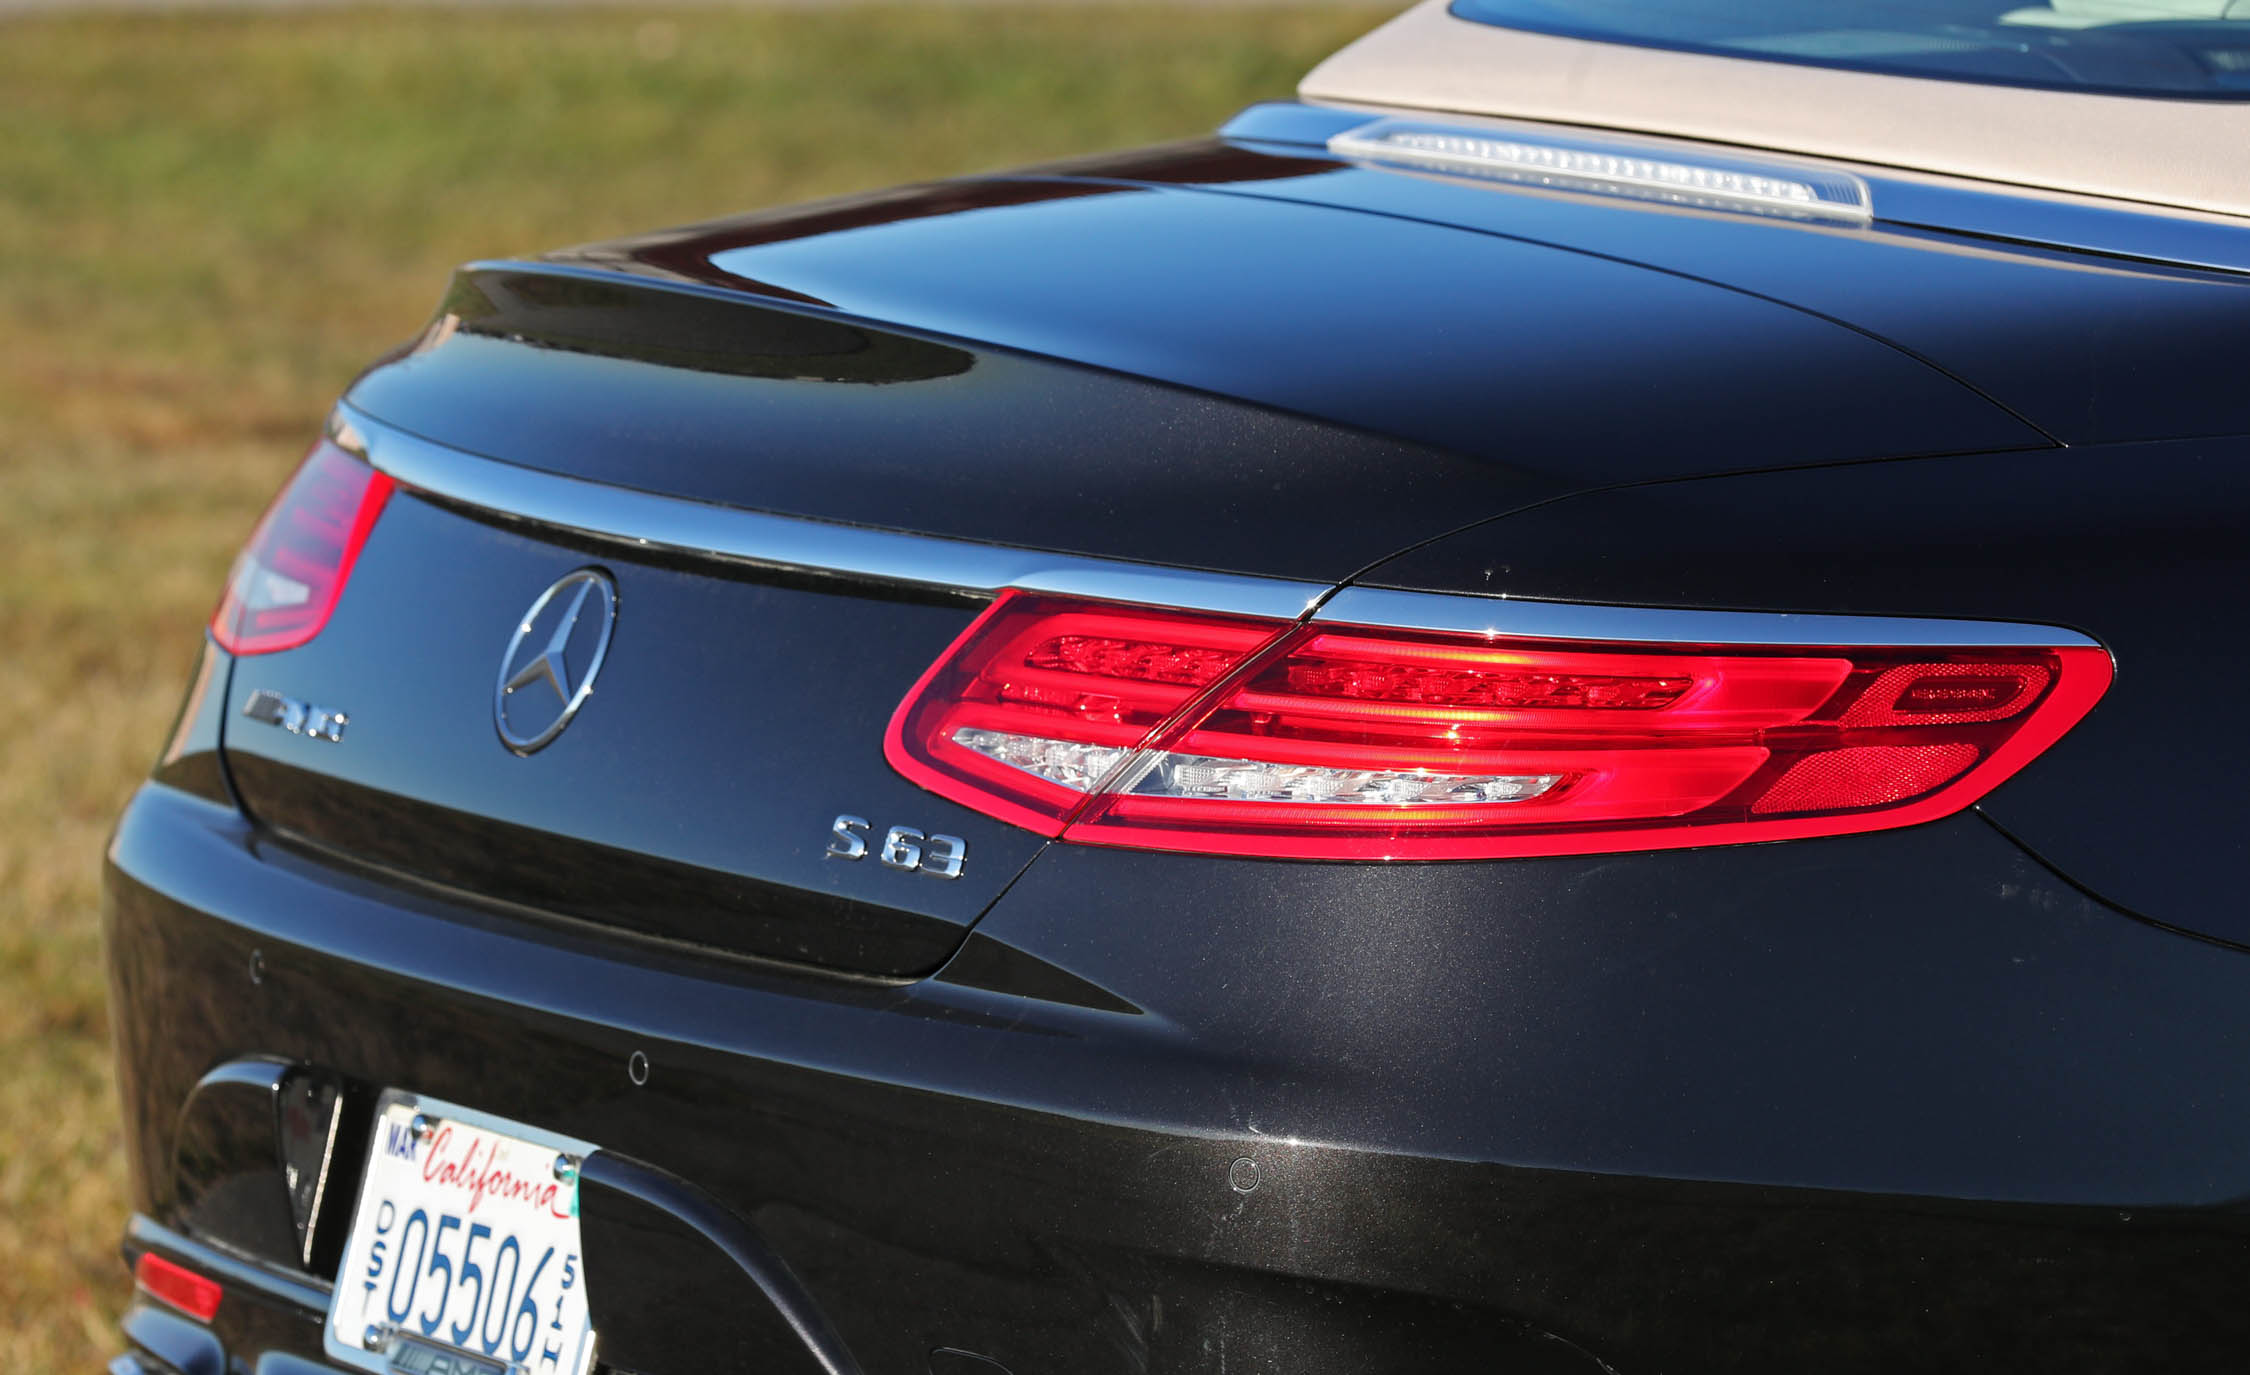 2017 Mercedes Amg S63 Cabriolet Exterior View Taillight (Photo 13 of 38)